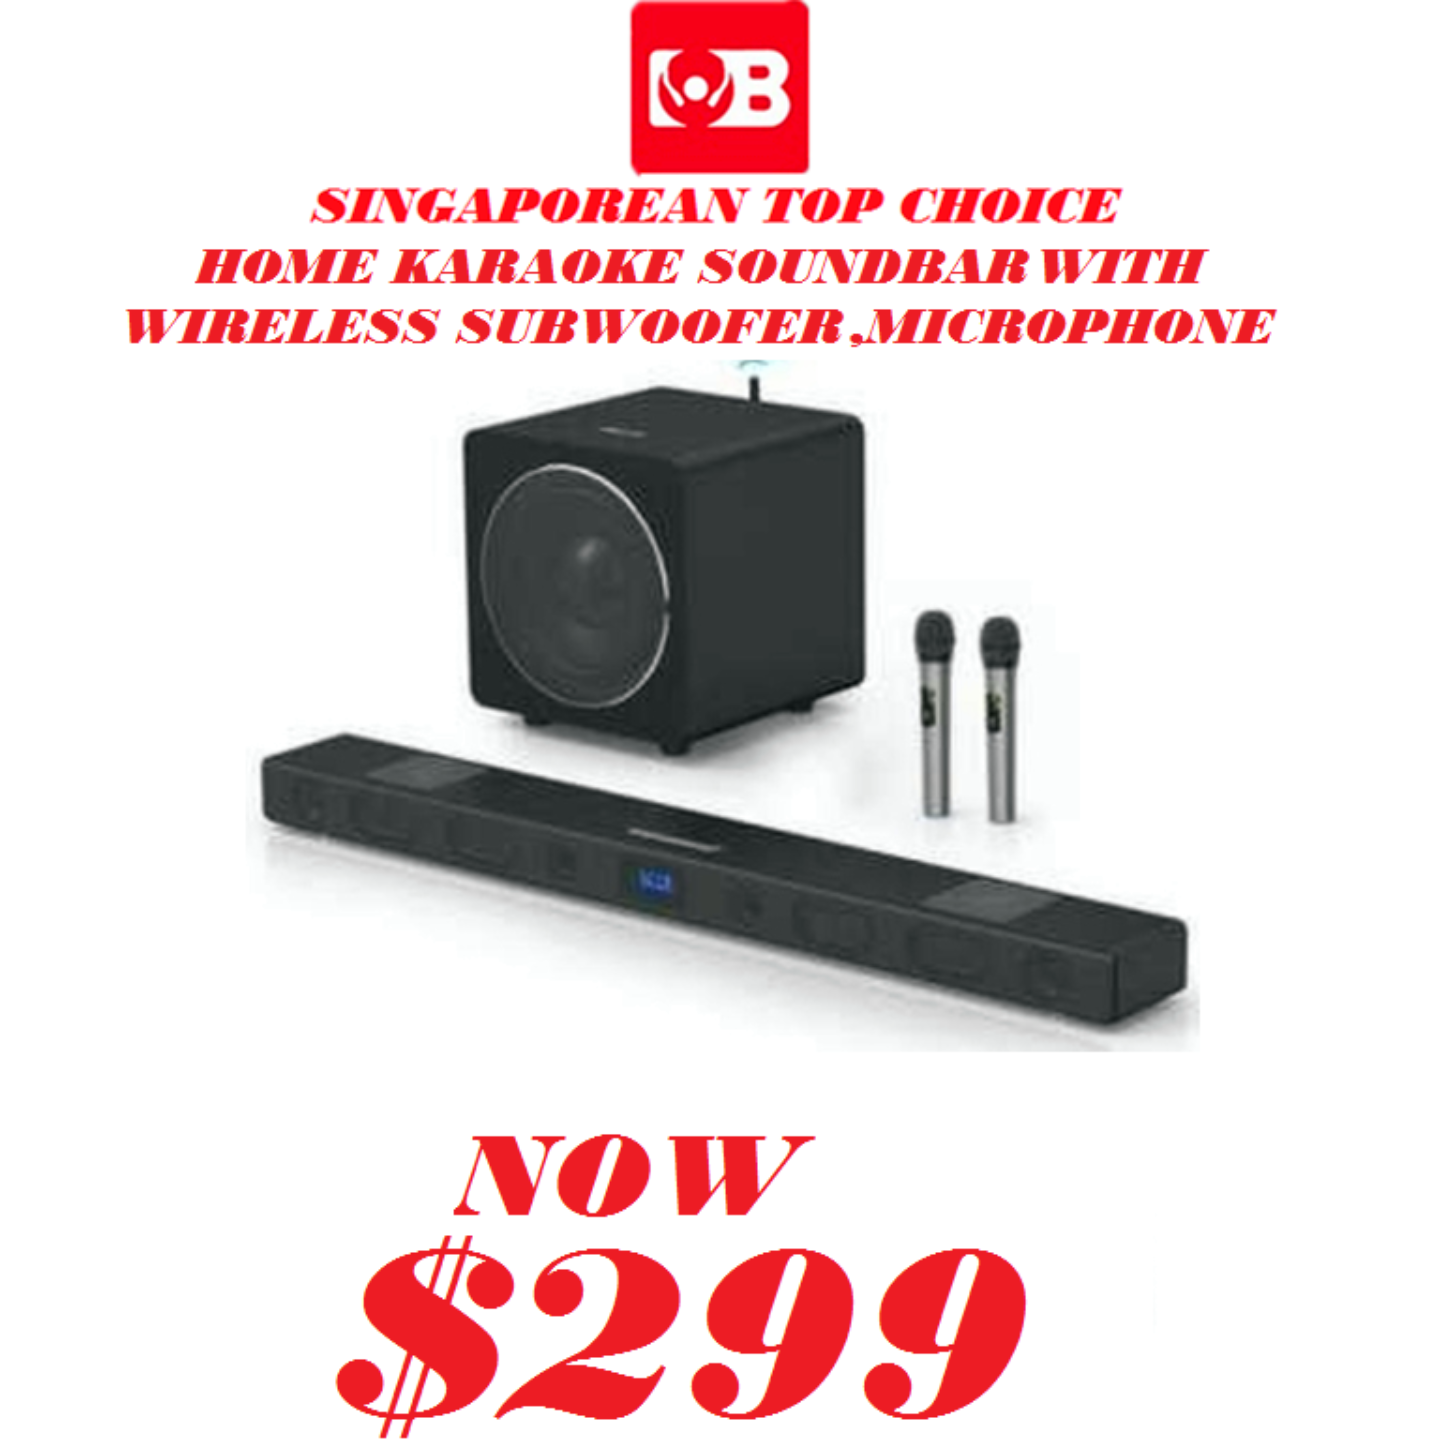 MB Home karaoke soundbar With Wireless Subwoofer